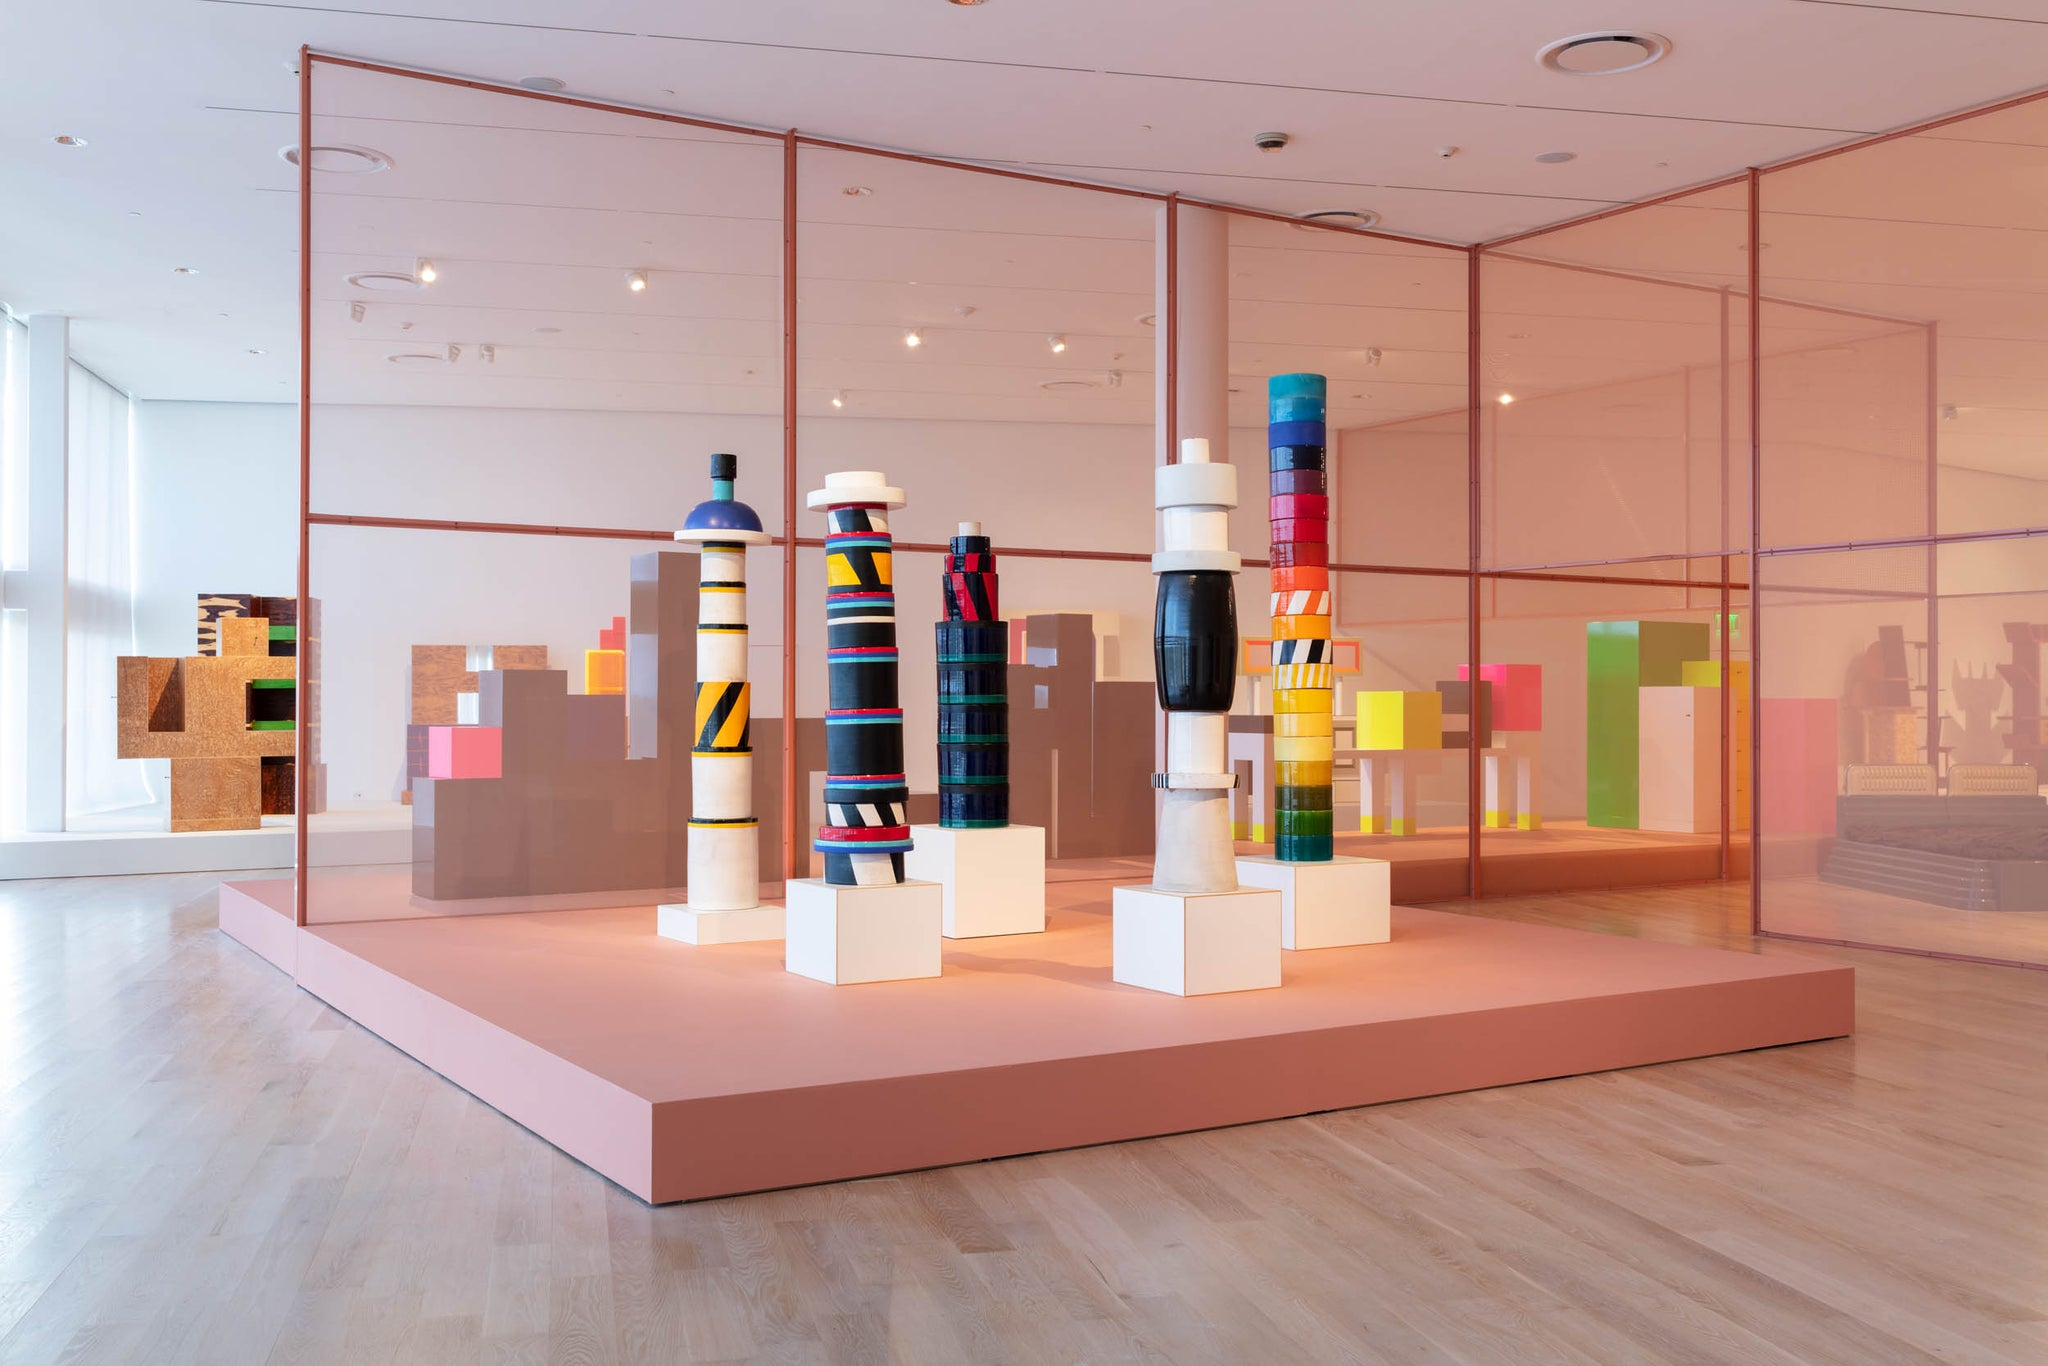 Ettore Sottsass and the Social Factory exhibition. Photo © ICA Miami